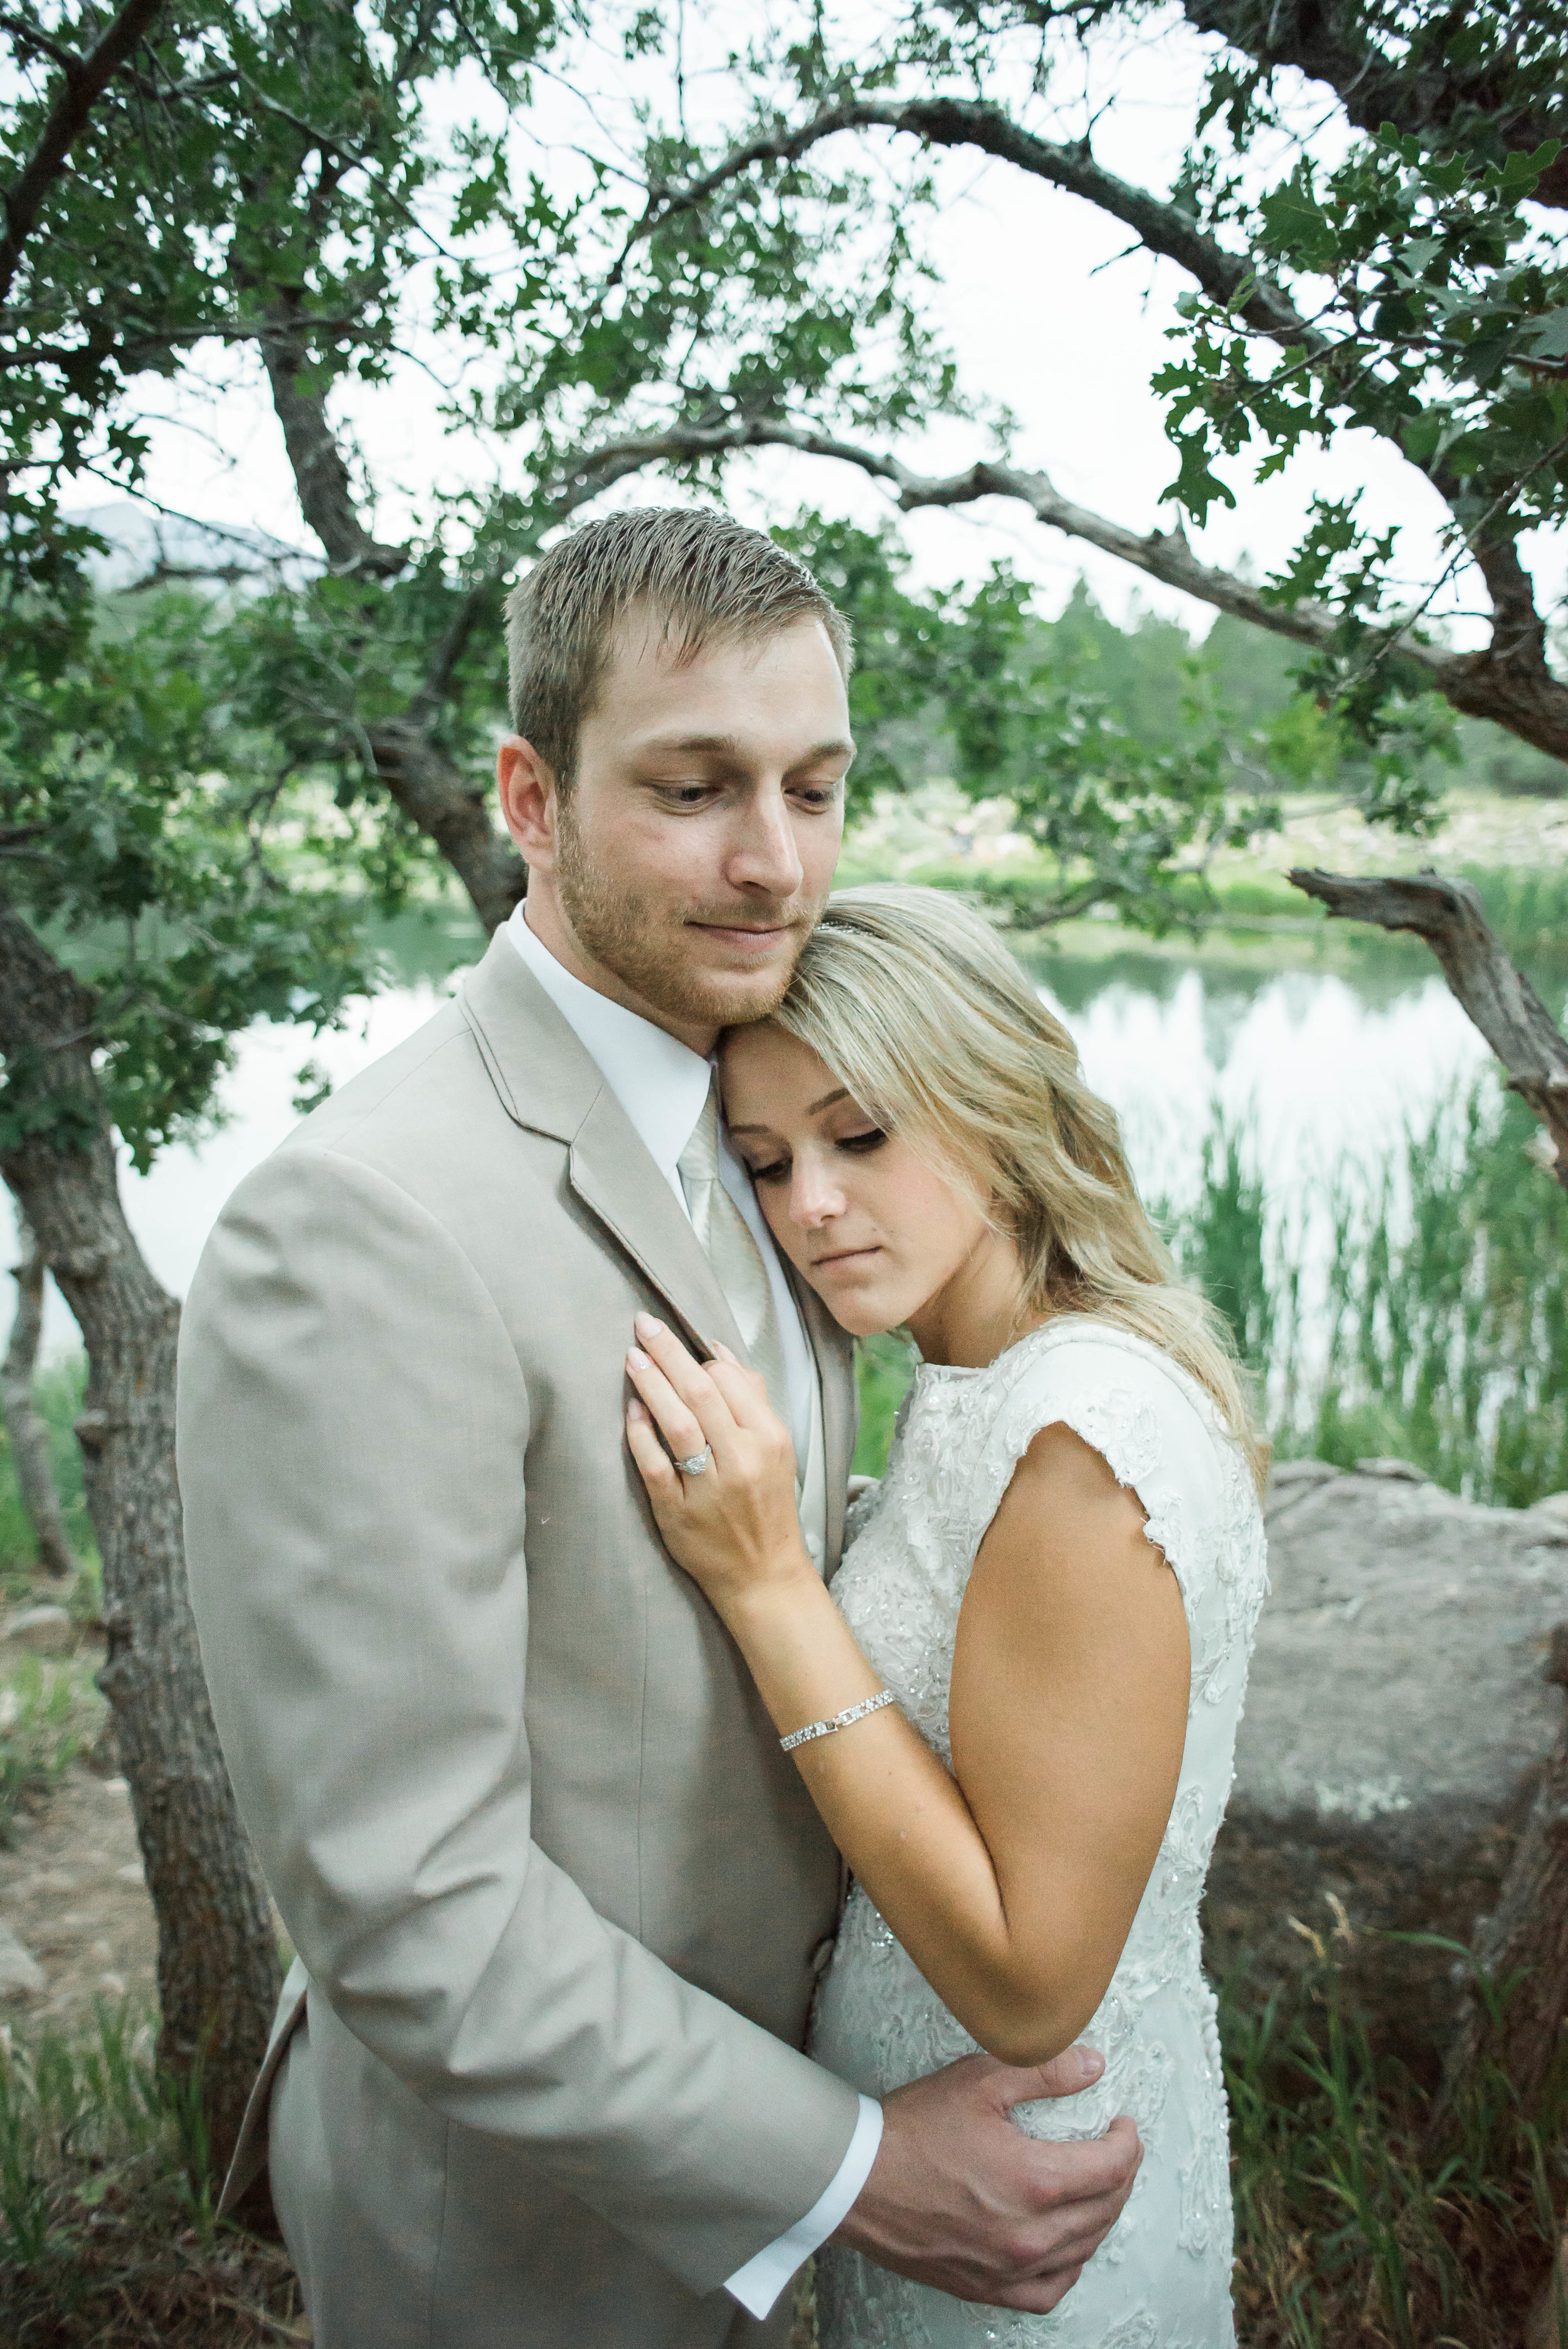 DANIEL+LACI-Sadie_Banks_Photography-69.jpg